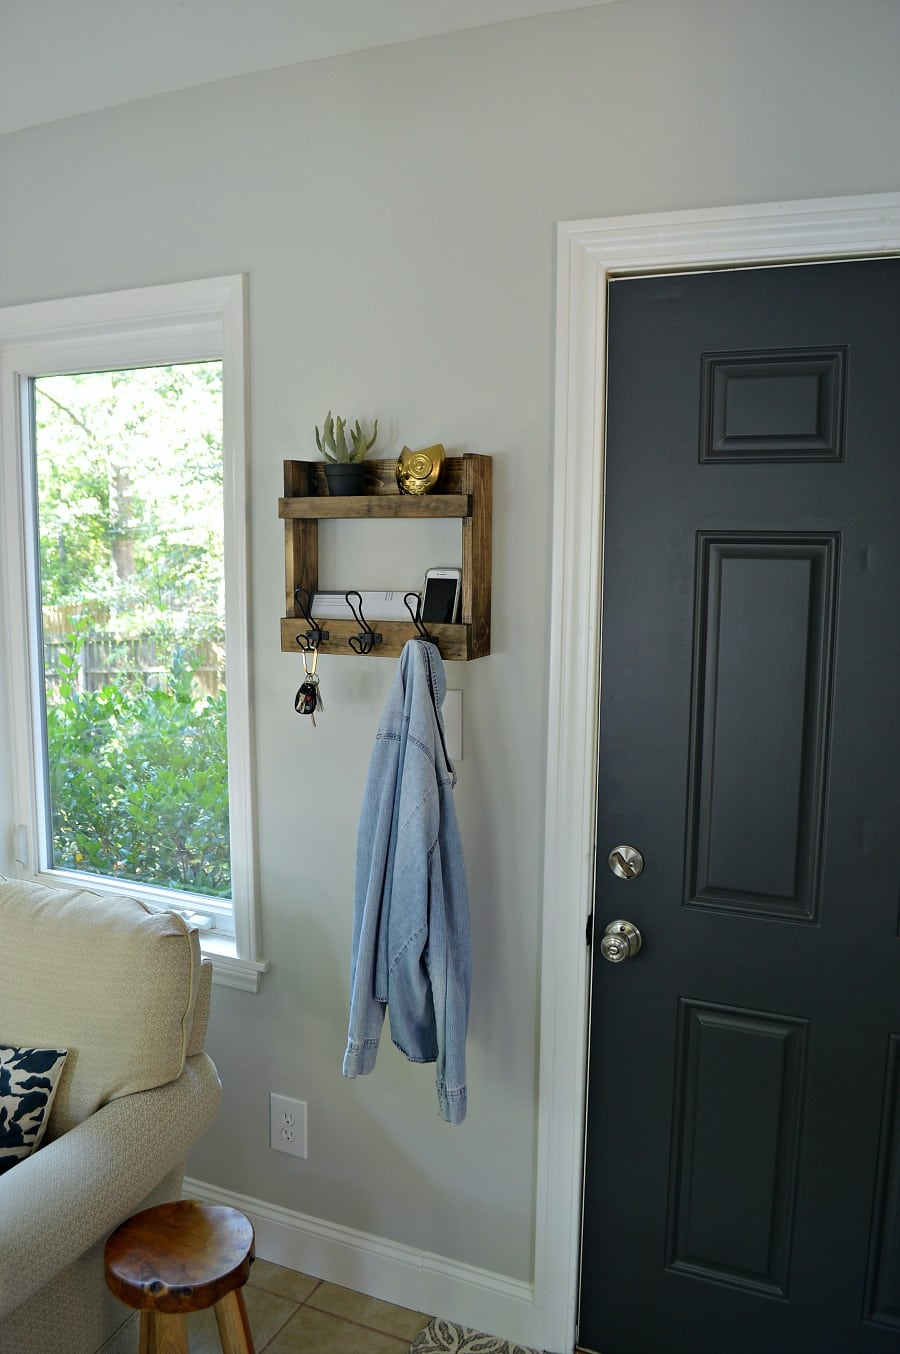 Rustic wall mounted shelves with coat hooks